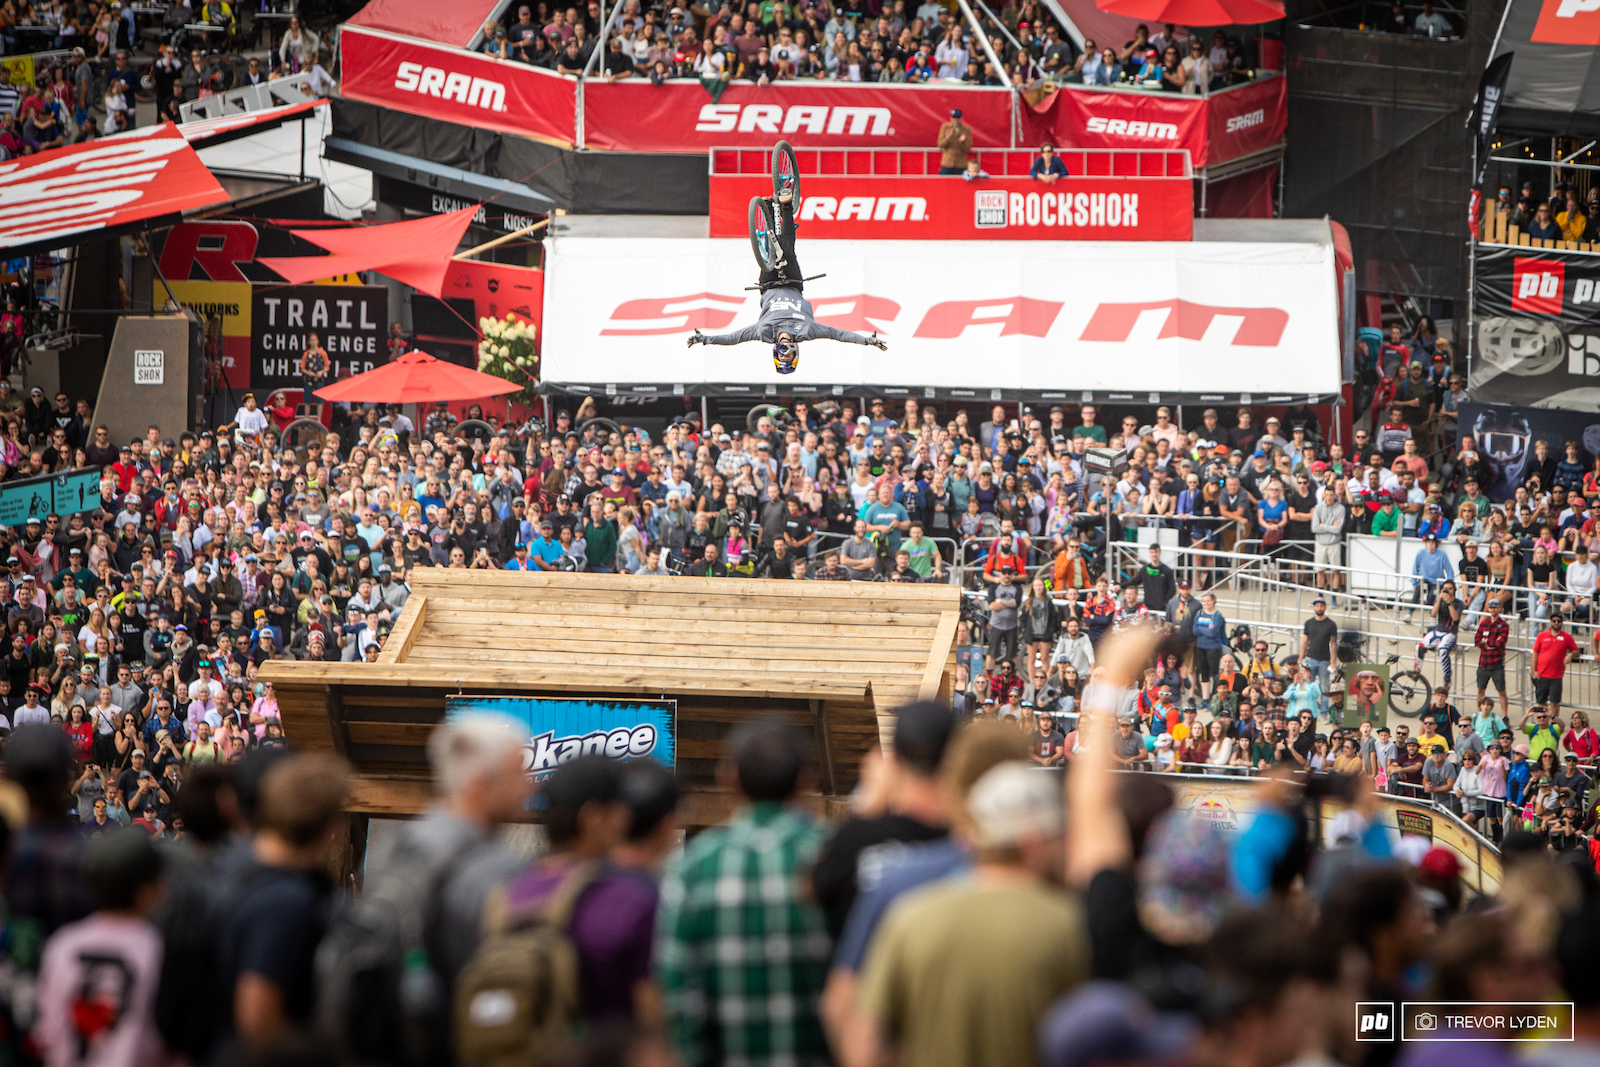 David Godziek just won an X-Games bronze medal and repeated his victory here in Whistler.